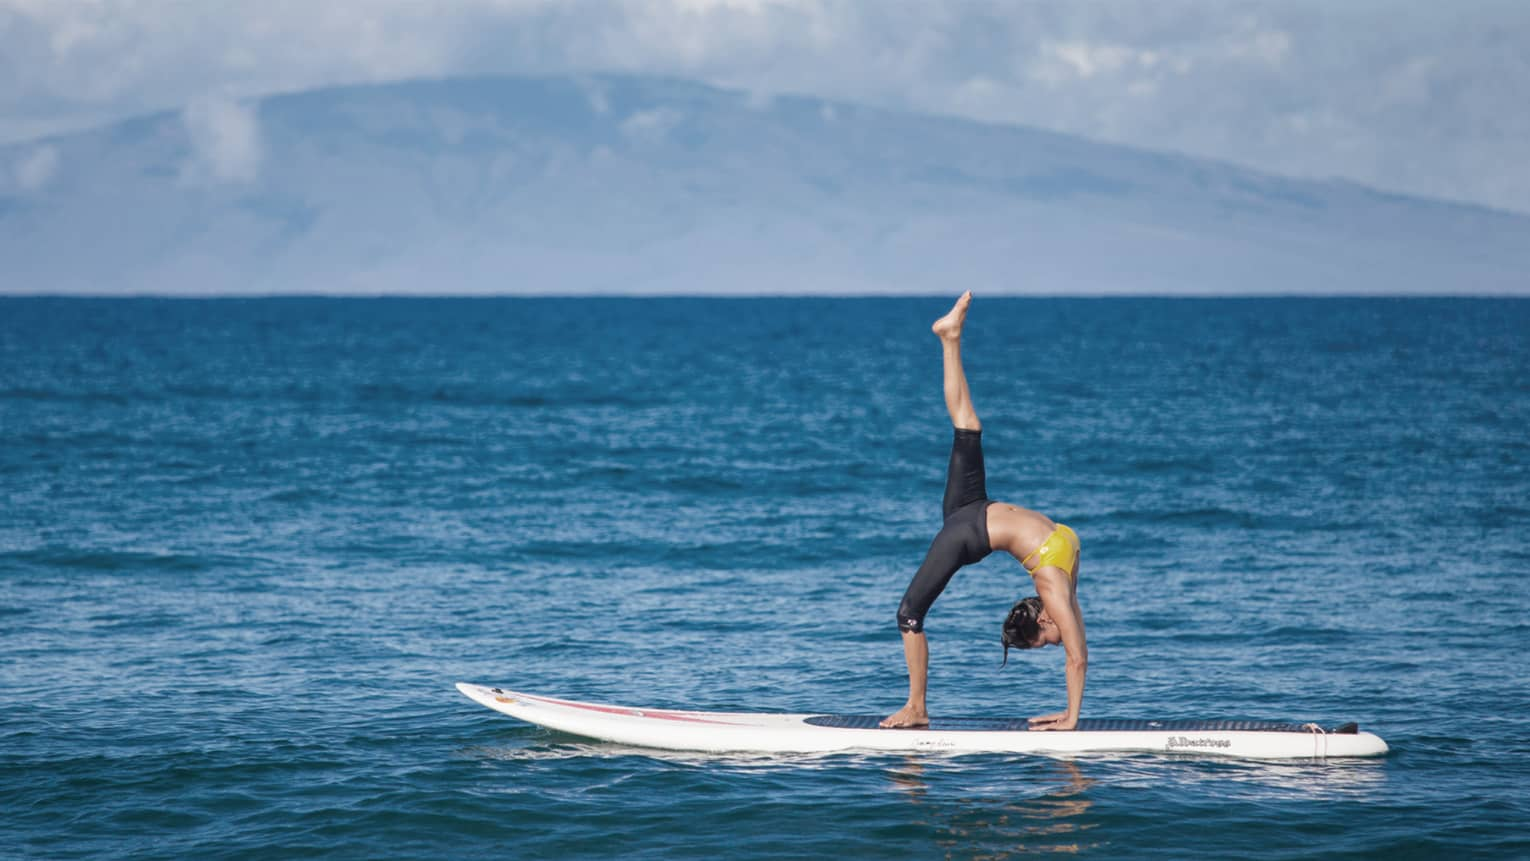 Woman balances in upside-down yoga pose on paddleboard on ocean